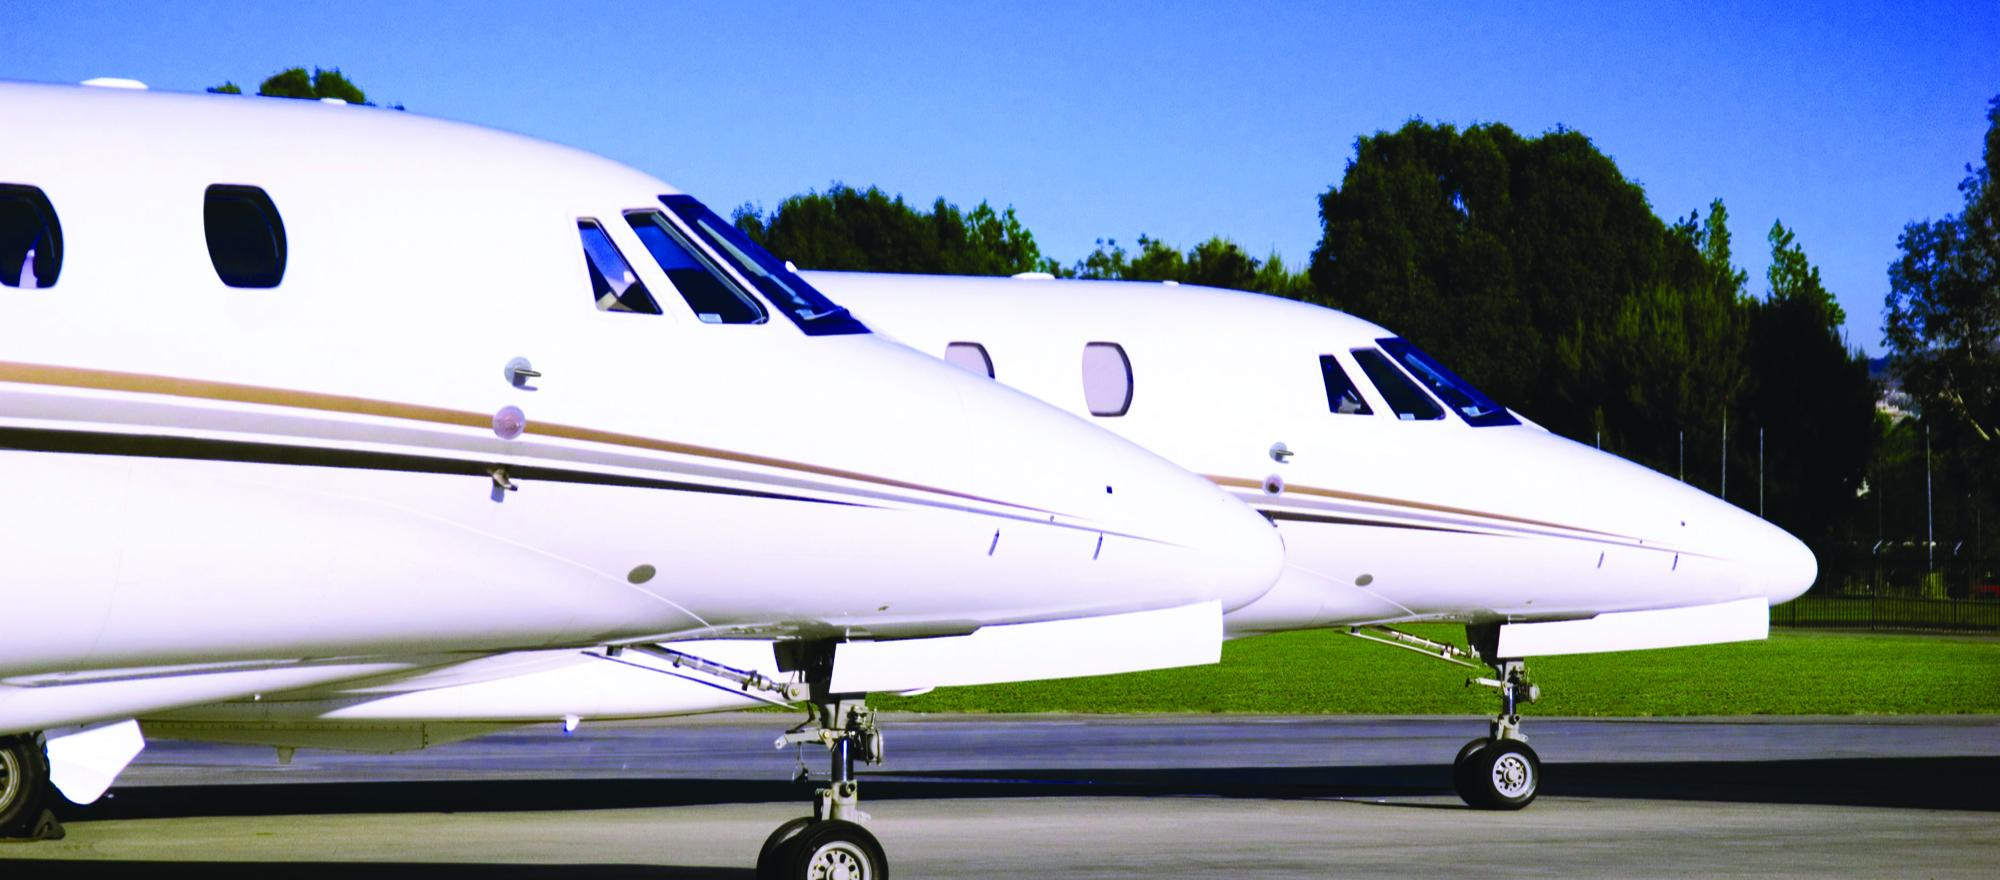 XOJet offers and Elite Access program which guarantees access to the company's all Wi-Fi-equpped fleet.